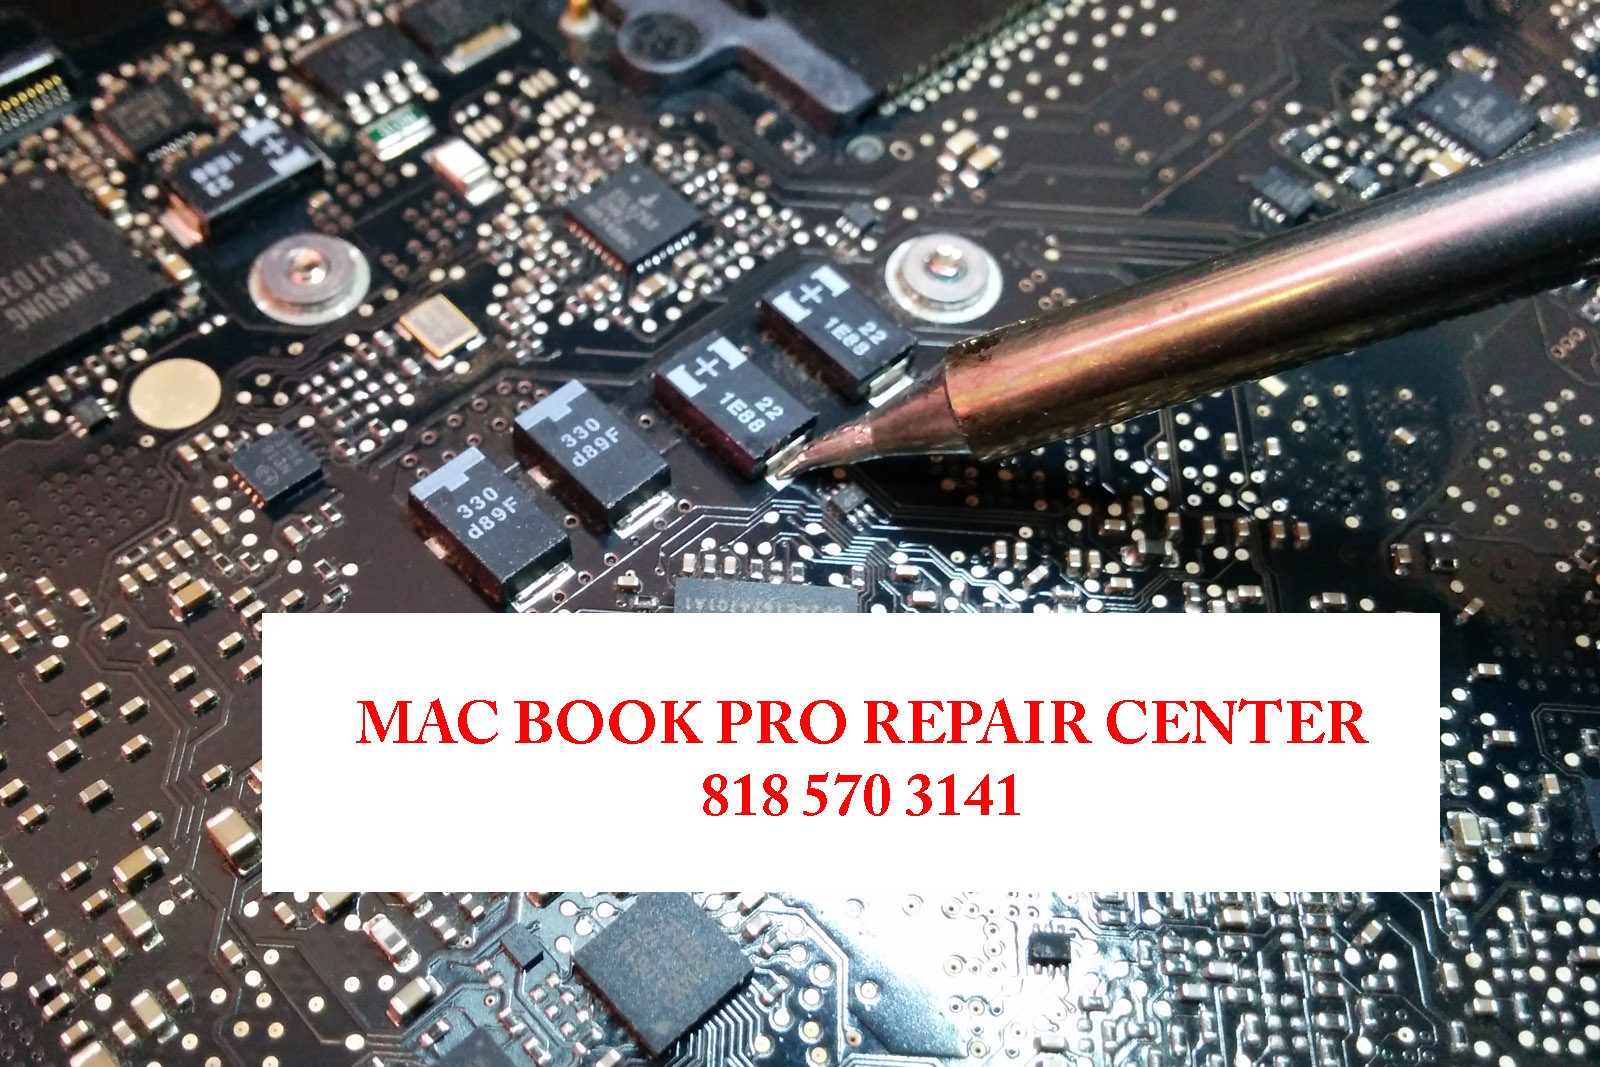 mac book pro repair center in woodland hills. get your mac repaired by one of our apple geeks today